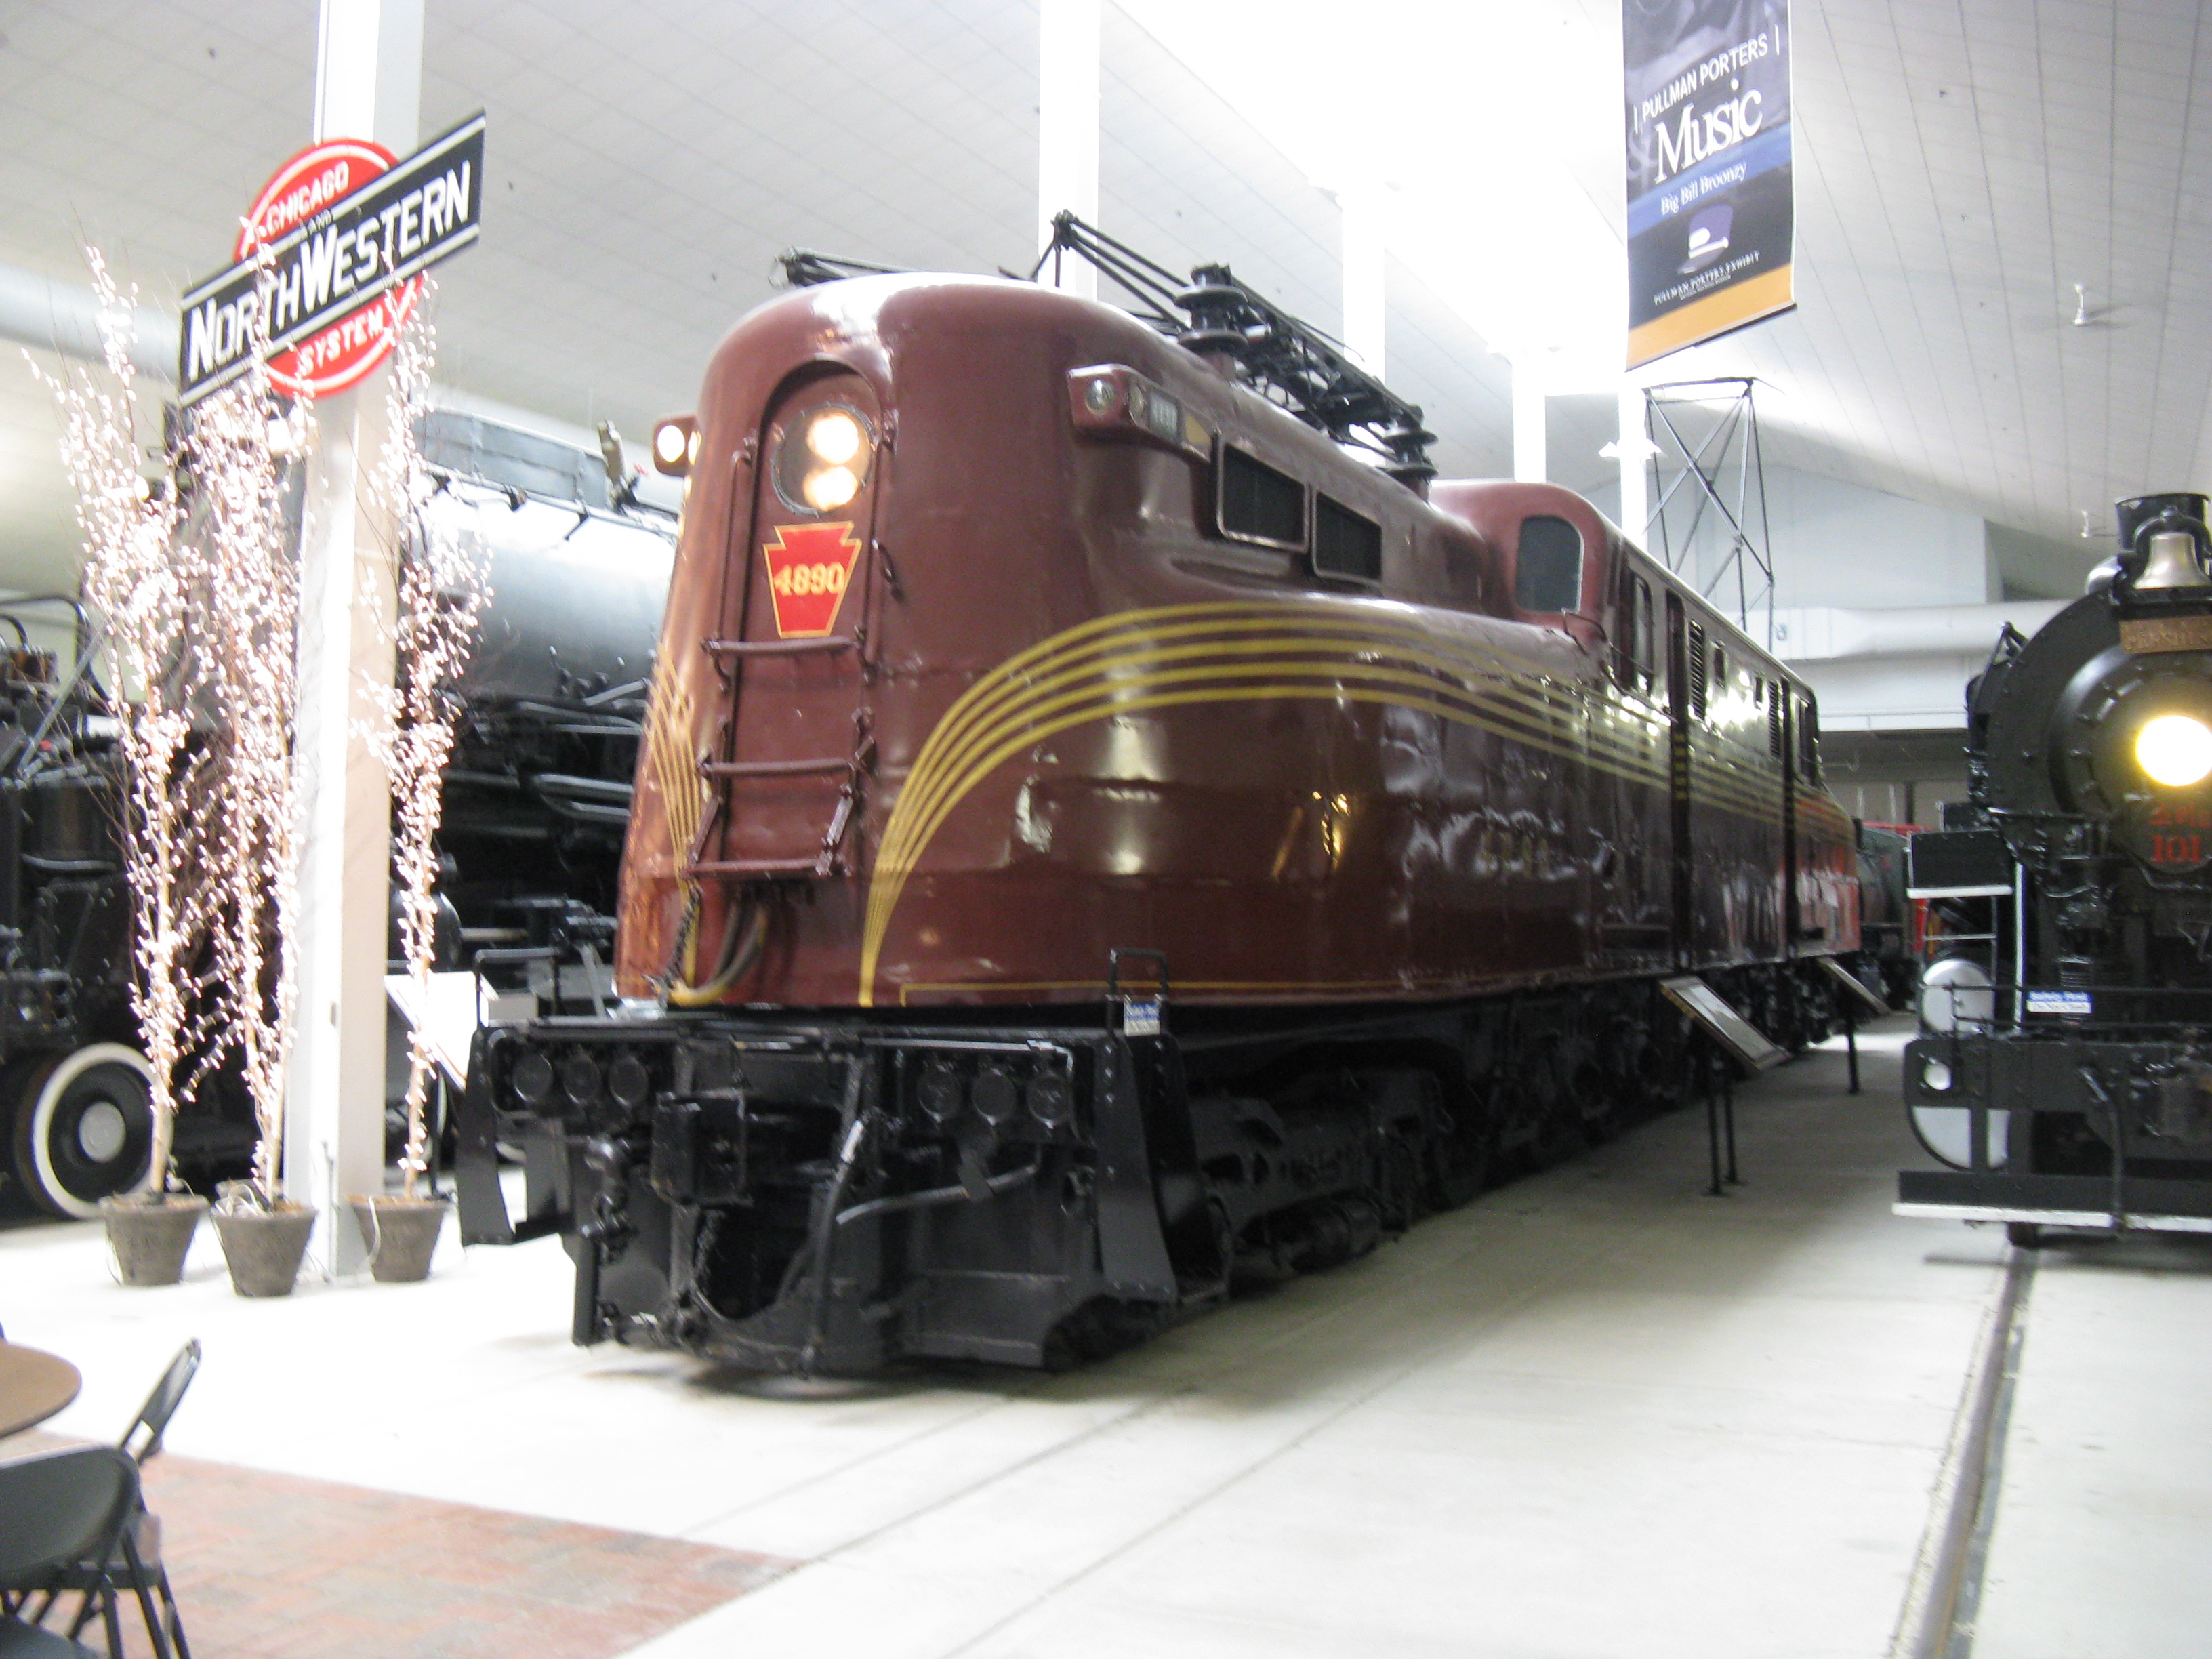 National Railroad Museum >> Something About Trains The National Railroad Museum Green Bay Wi